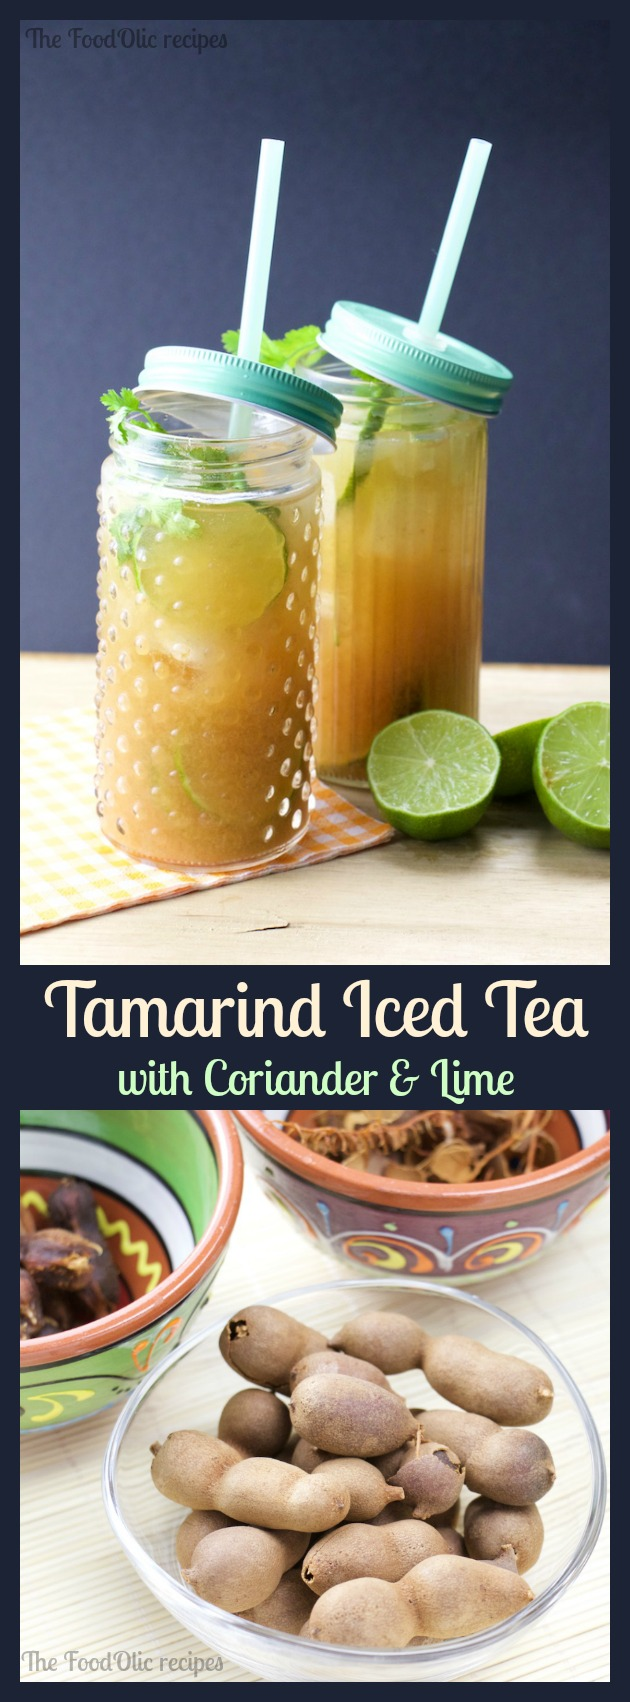 Tamarind Iced Tea makes one of the healthiest and tastiest Iced Tea to cool down on a hot summer day! Served with extra lime, cilantro leaves and lots of ice cubes to make it extra fresh!